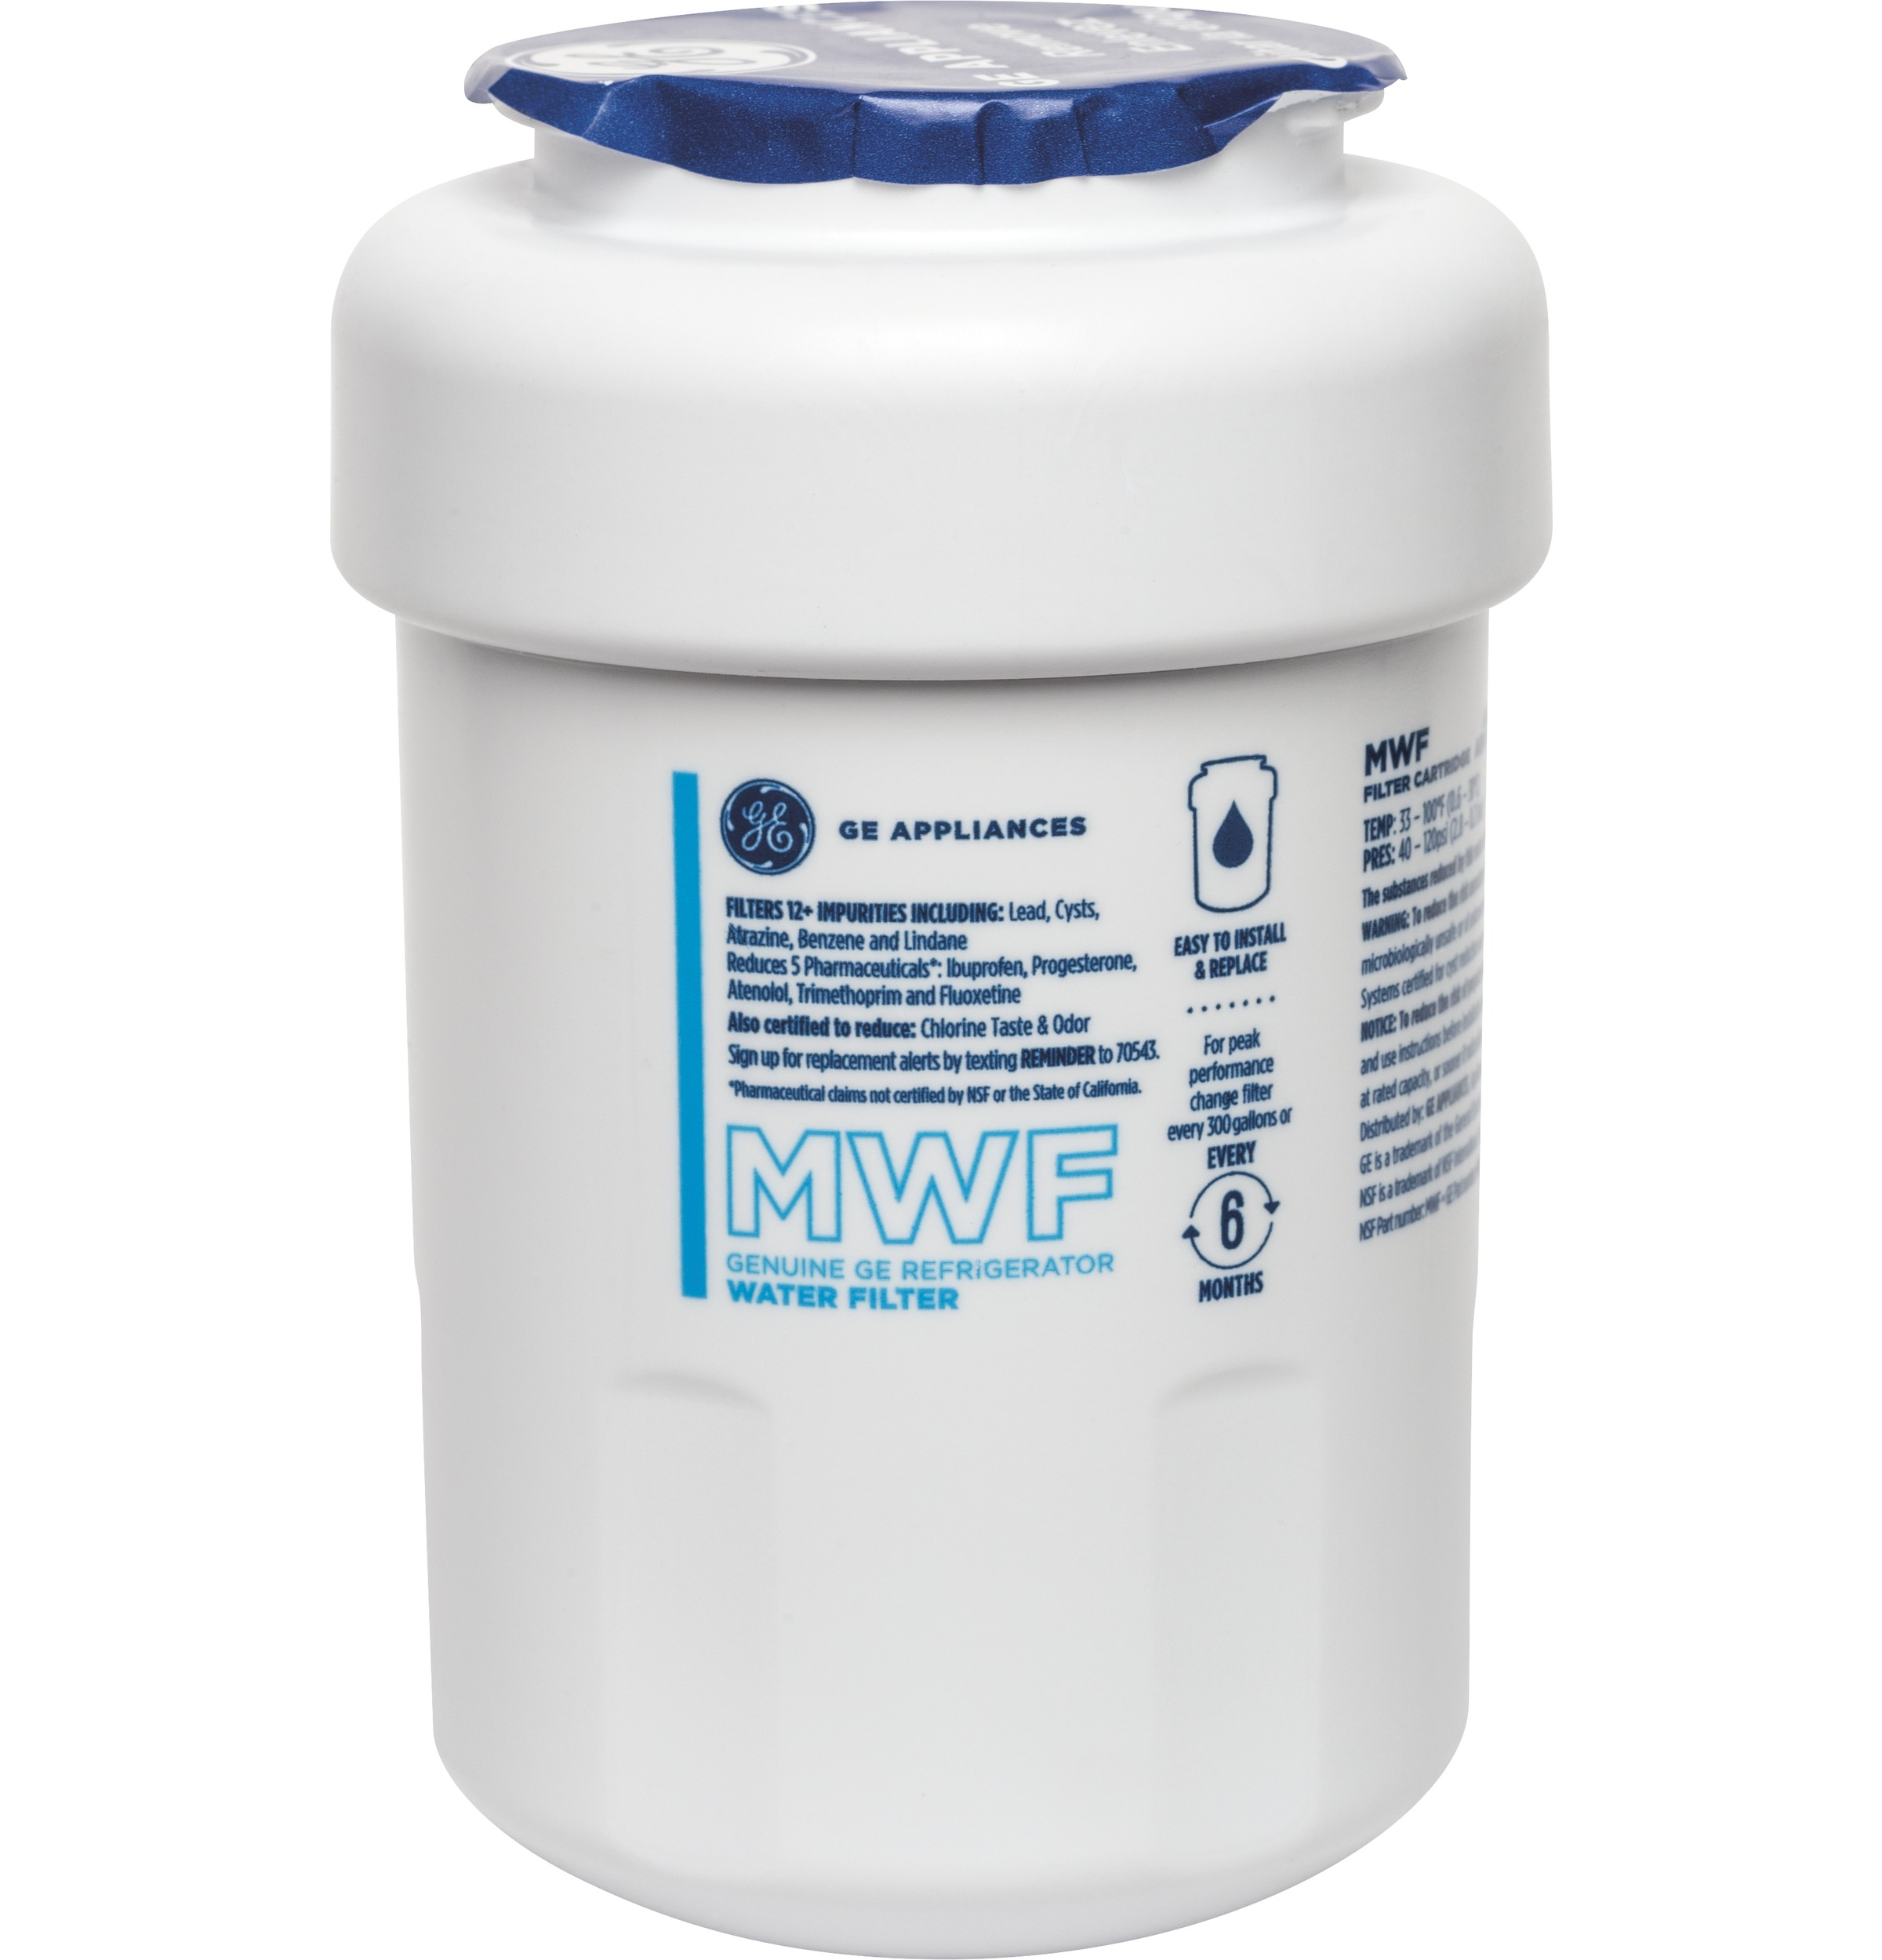 GE MWF Replacement Refrigerator Water Filter Cartridge #MWF